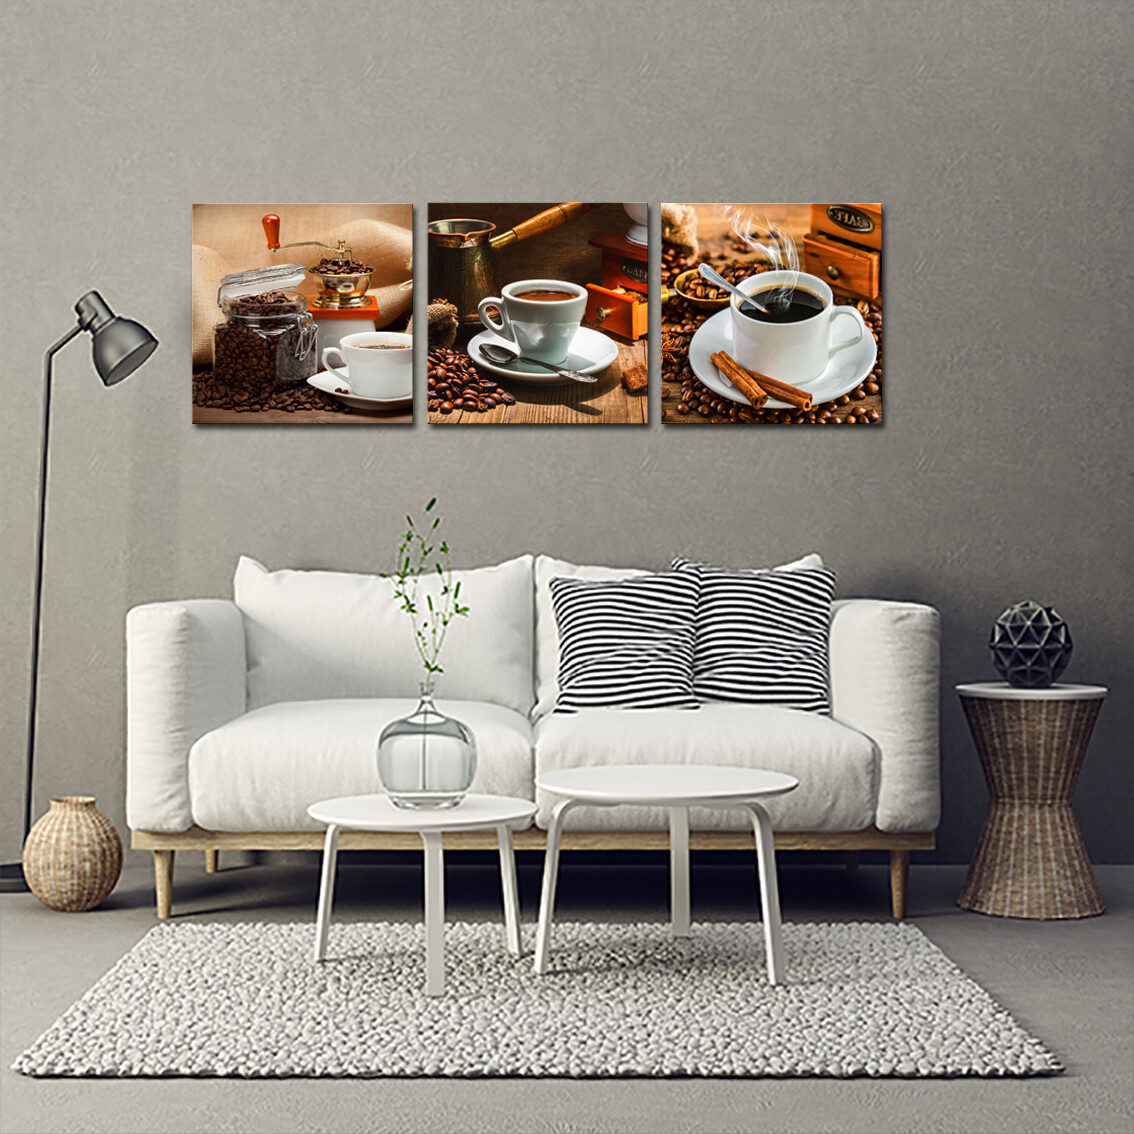 Coffee Break  - Modern Luxury Wall art Printed on Acrylic Glass - Frameless and Ready to Hang